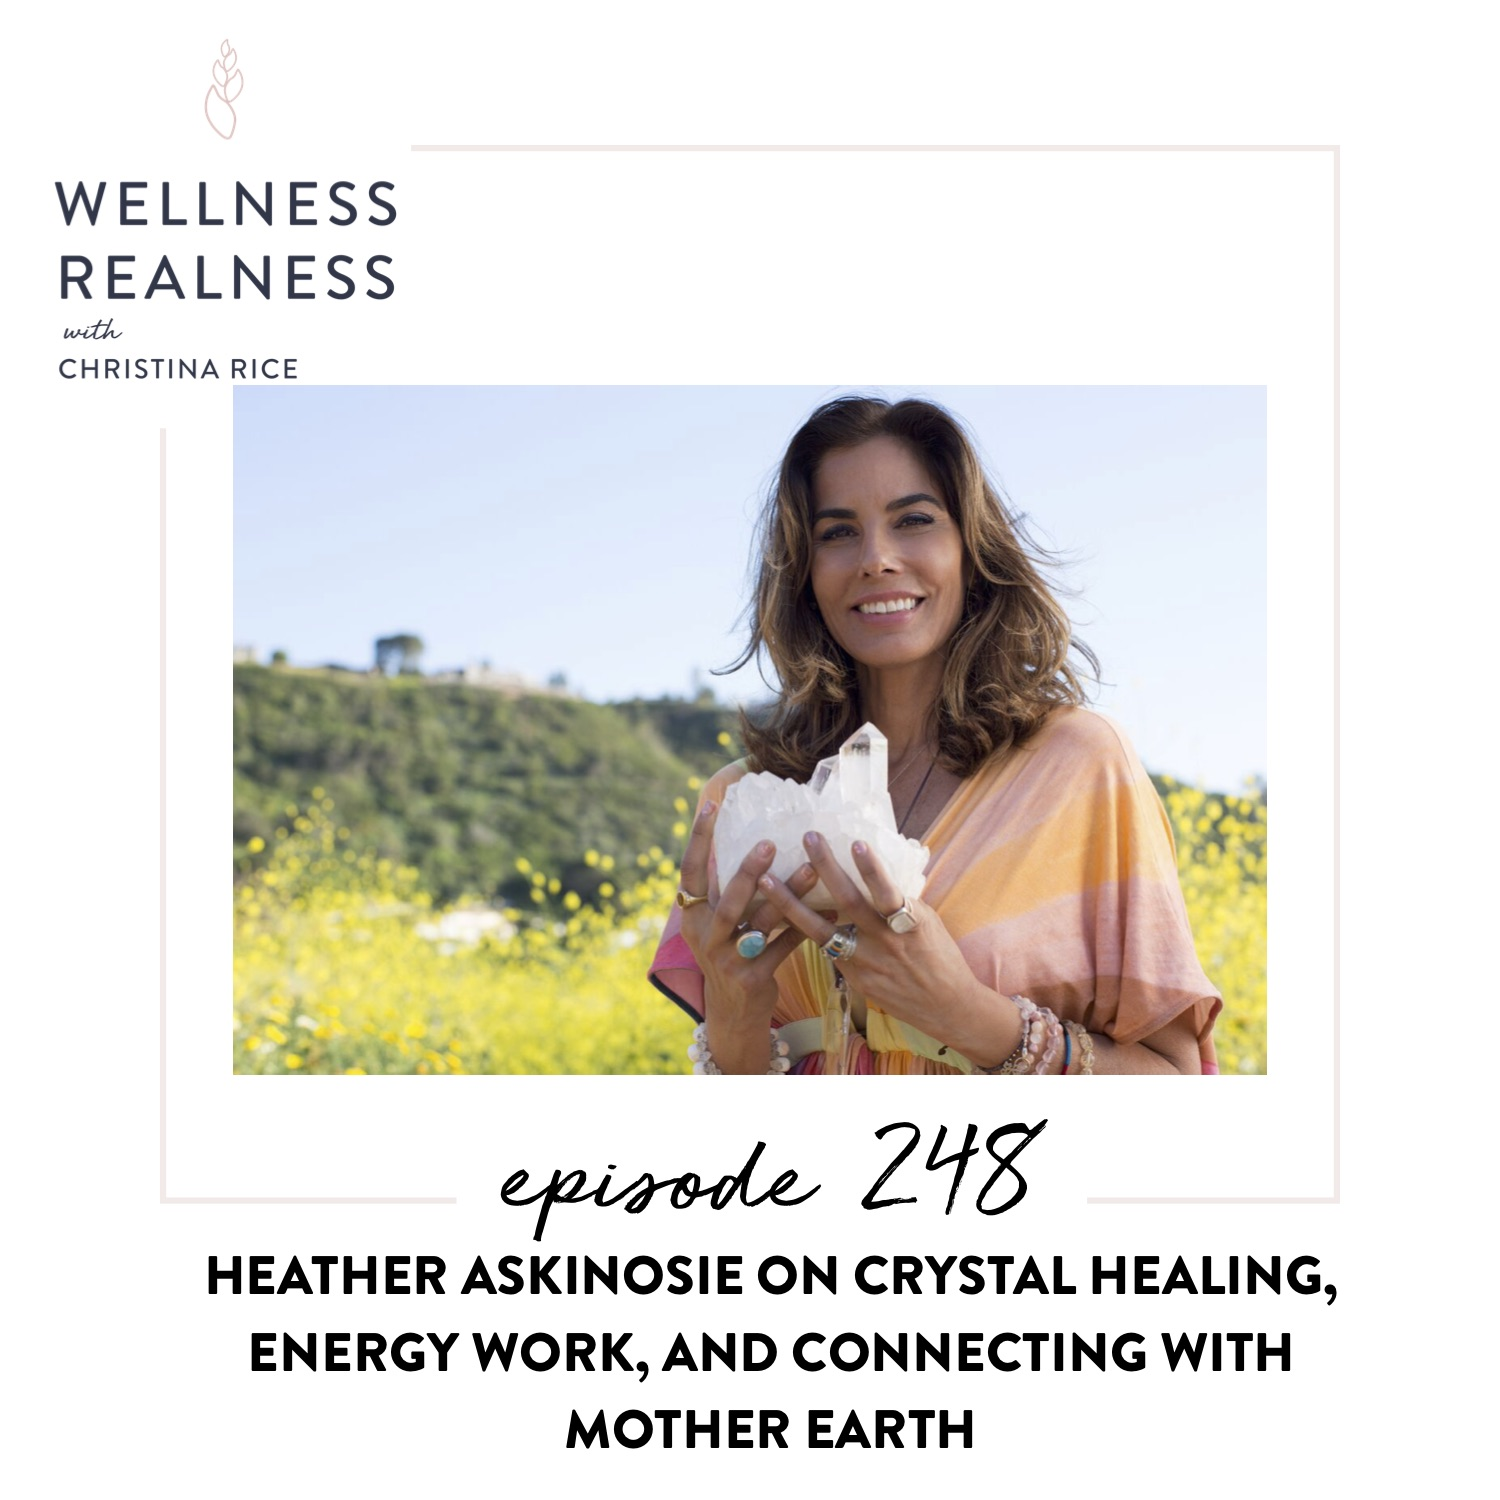 248: Heather Askinosie on Crystal Healing, Energy Work, and Connecting with Mother Earth